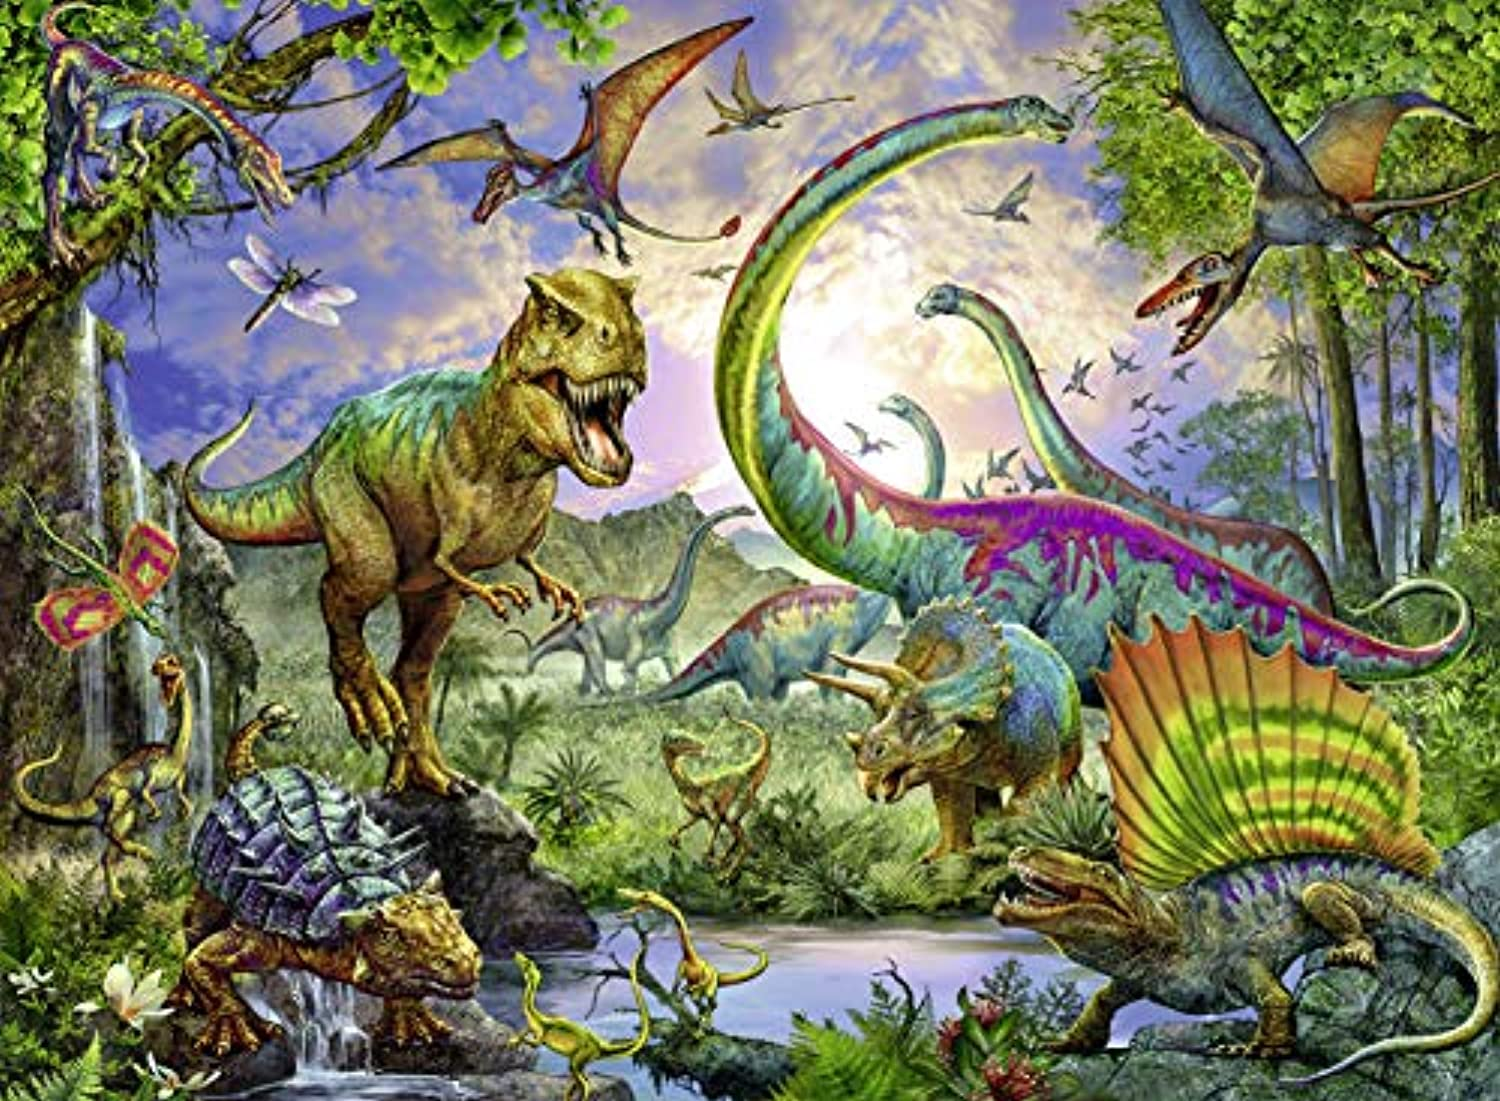 Classier: Buy Ravensburger Ravensburger Realm of The Giants 200 Piece Jigsaw Puzzle for Kids – Every Piece is Unique, Pieces Fit Together Perfectly